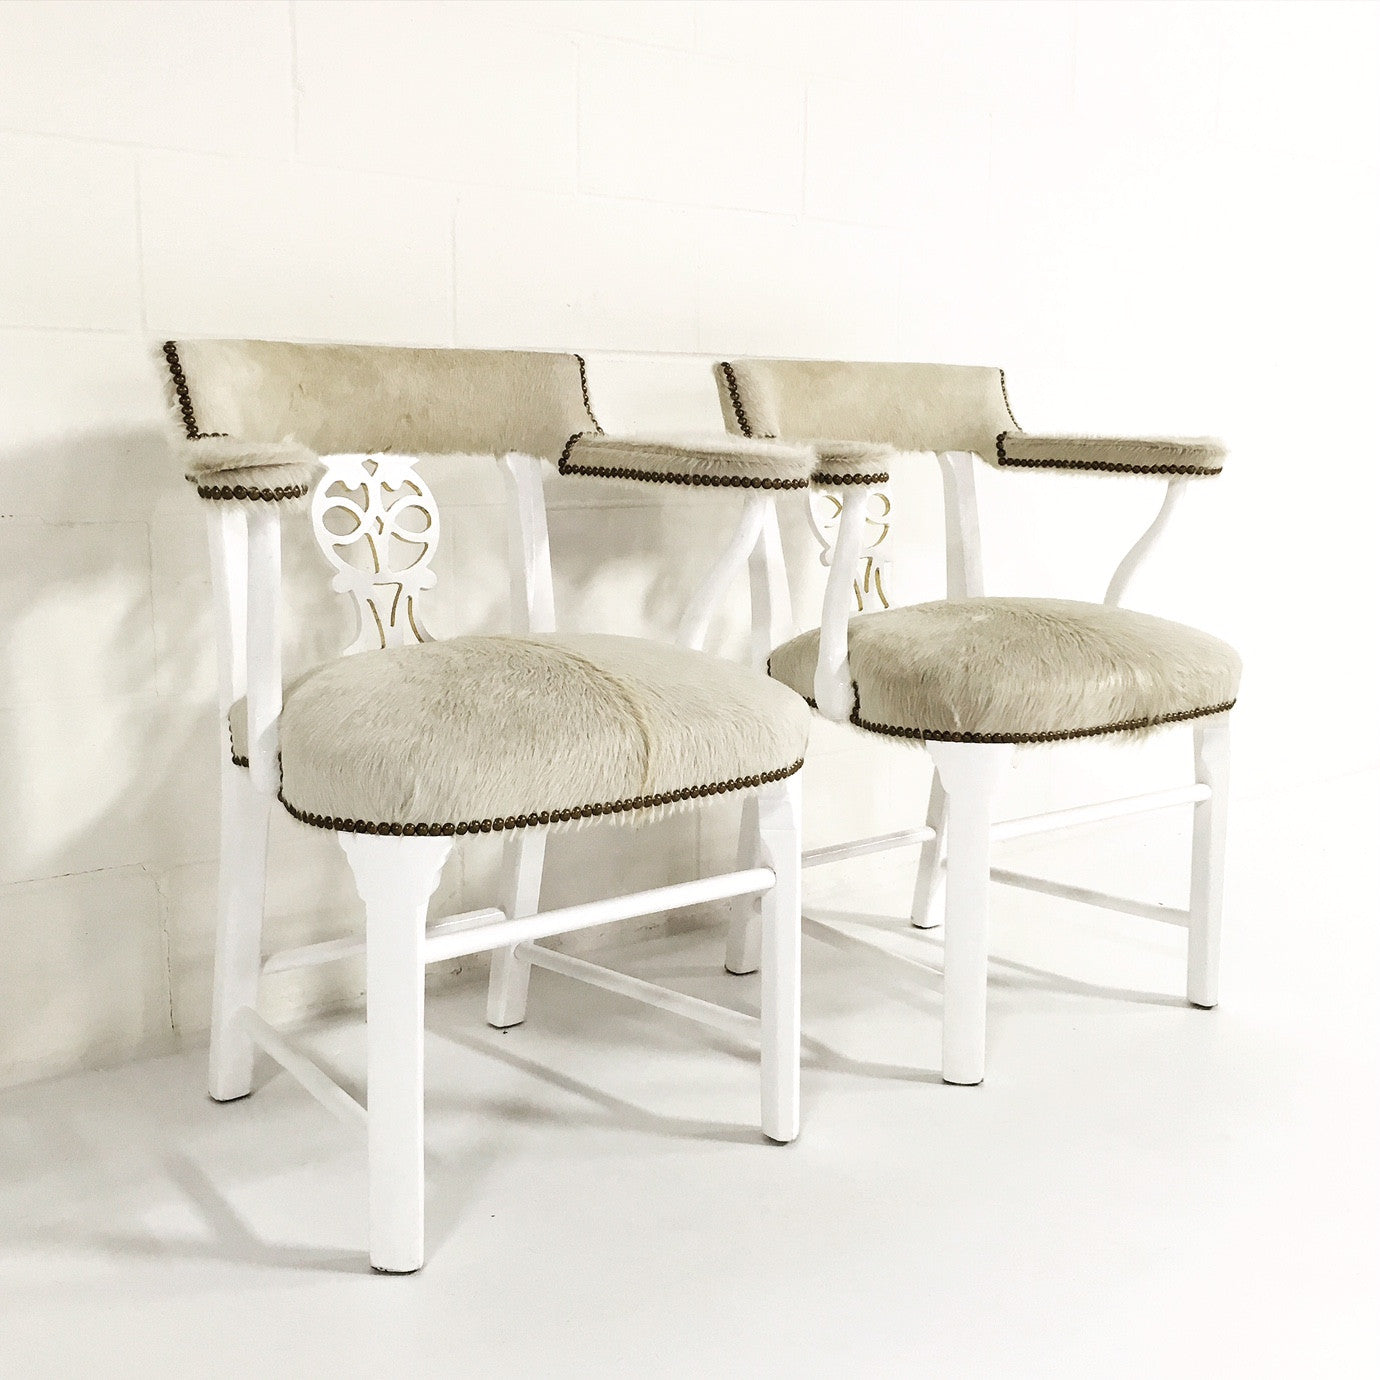 Painted Chairs in Brazilian Cowhide, pair - FORSYTH